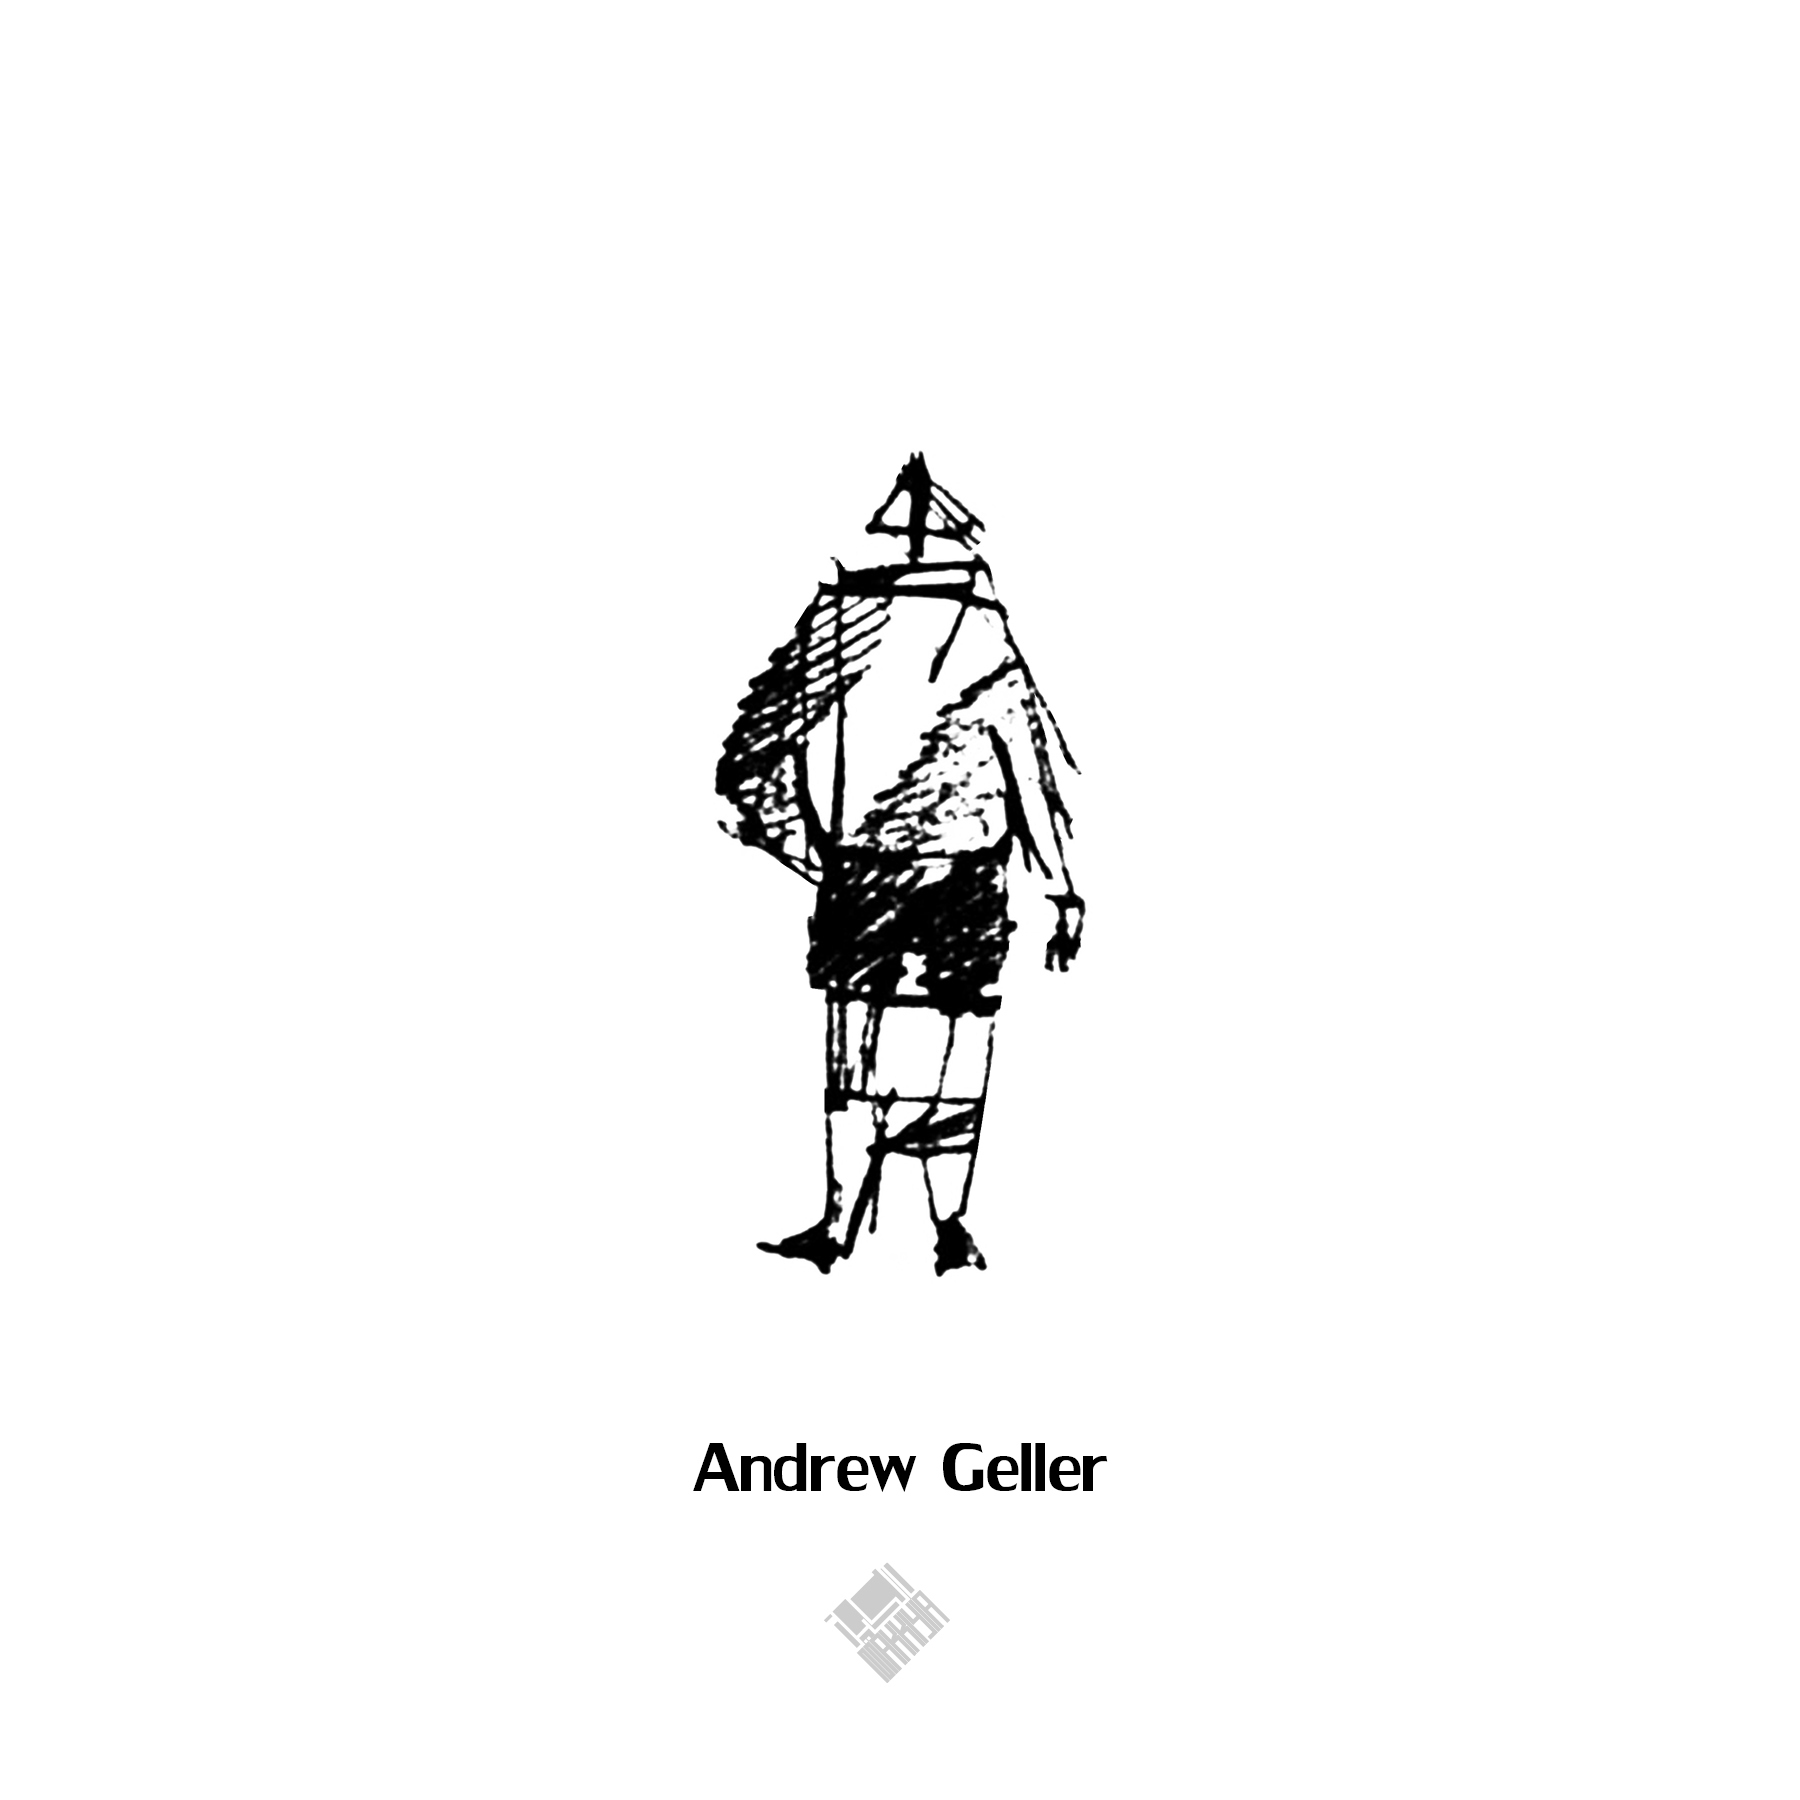 Gallery of These Architects' Drawings of Human Figures